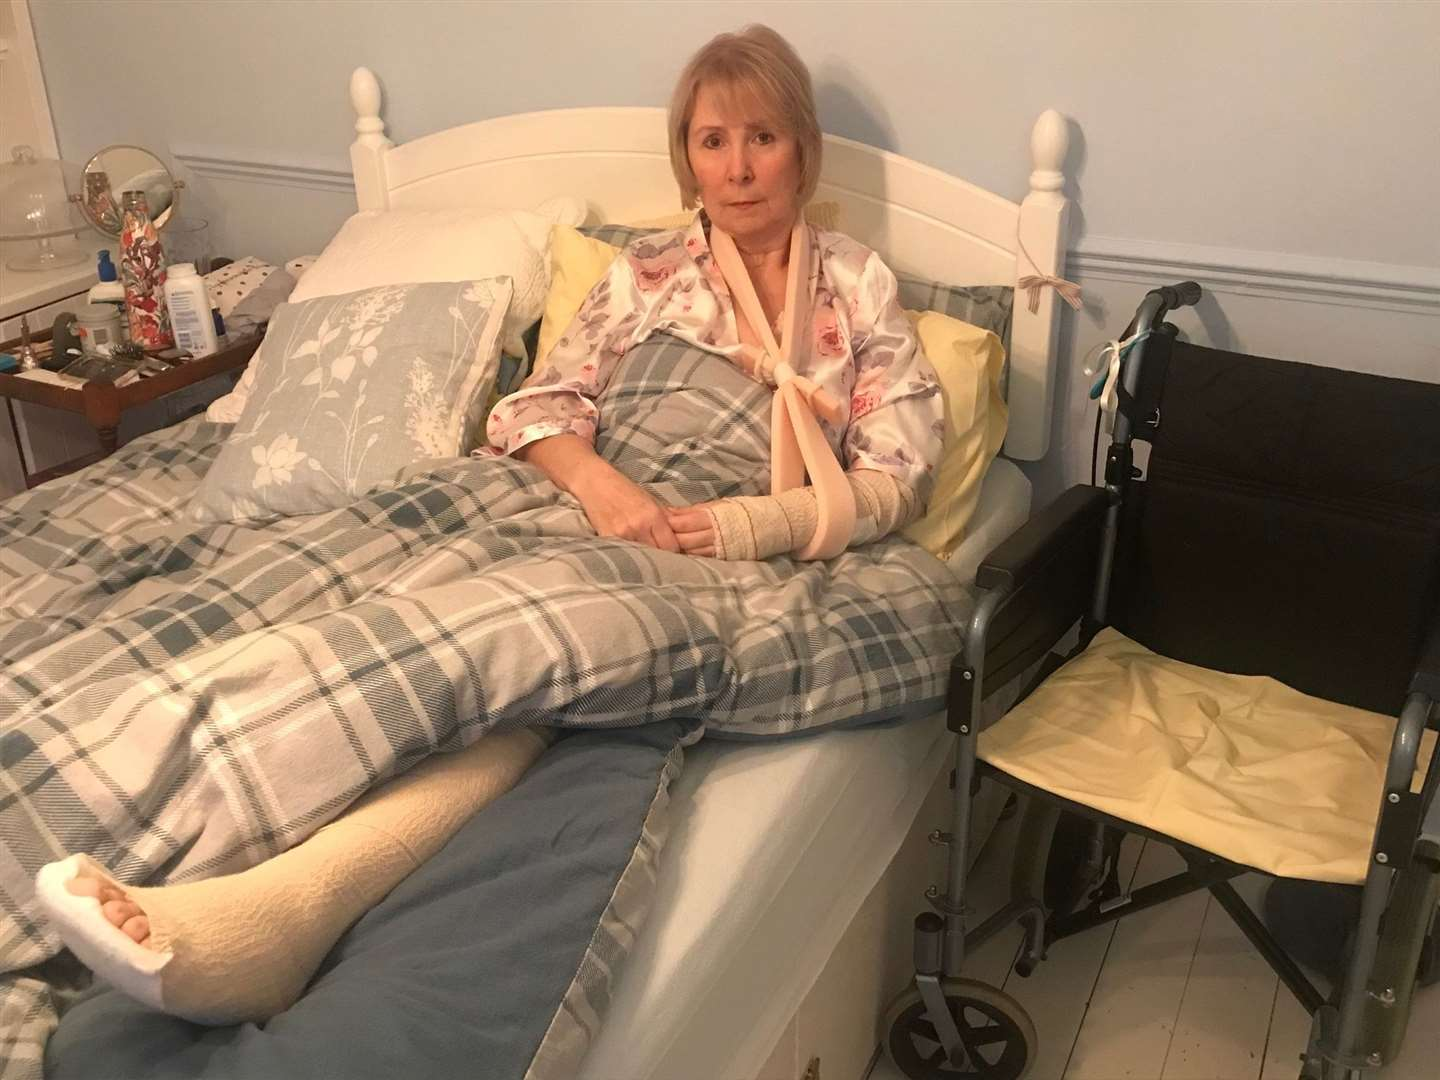 Pauline Lilford was badly injured when Mpia crashed into her on an e scooter in Canterbury in November. Picture: Mike Lilford